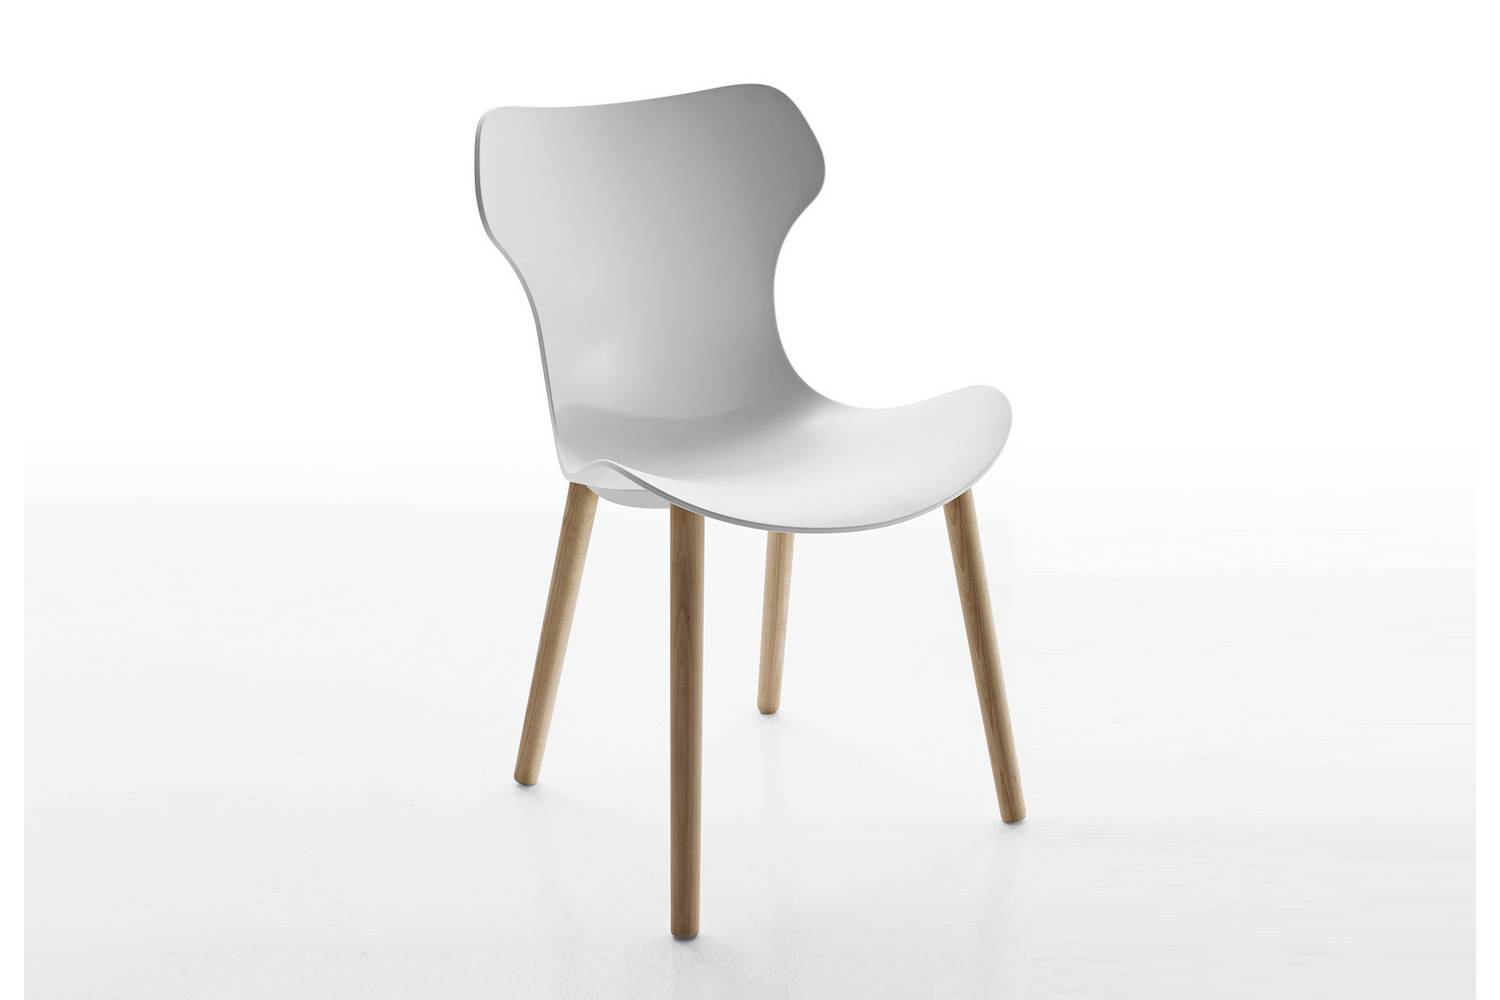 white shell chair cheap card table and chairs set papilio by naoto fukasawa for b andb italia